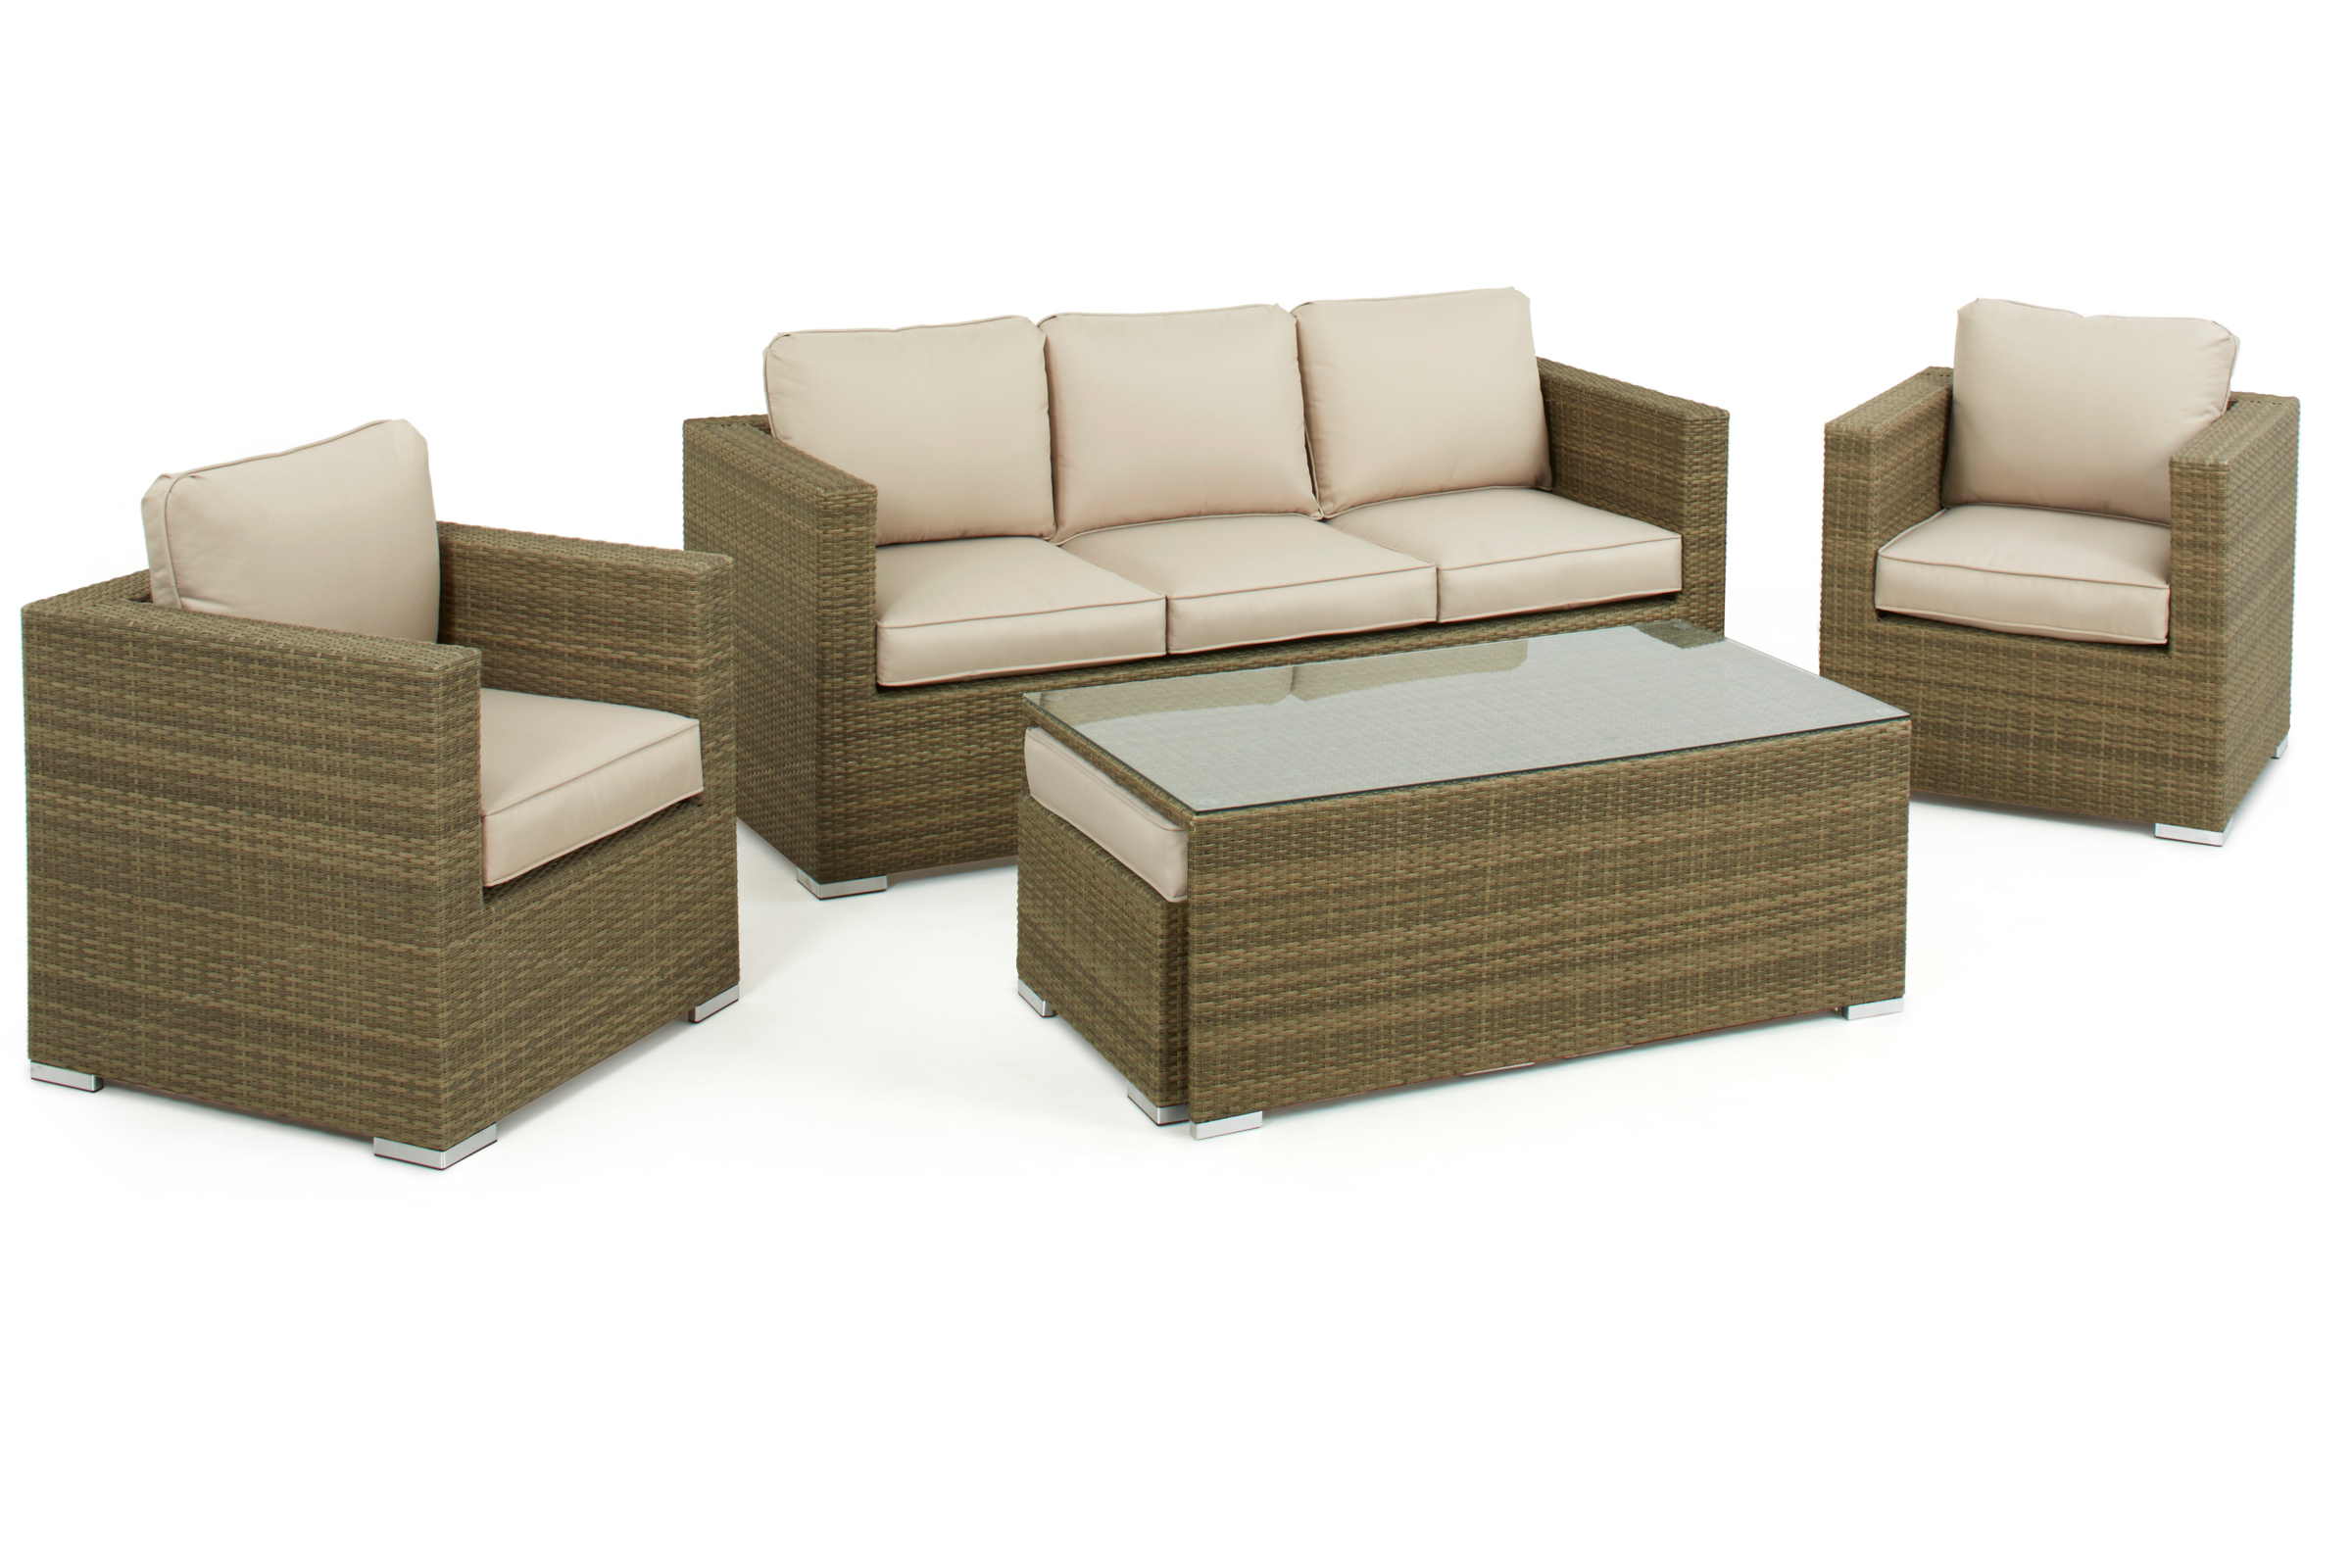 Light Brown Tuscany 3 Seat Rattan Sofa Set